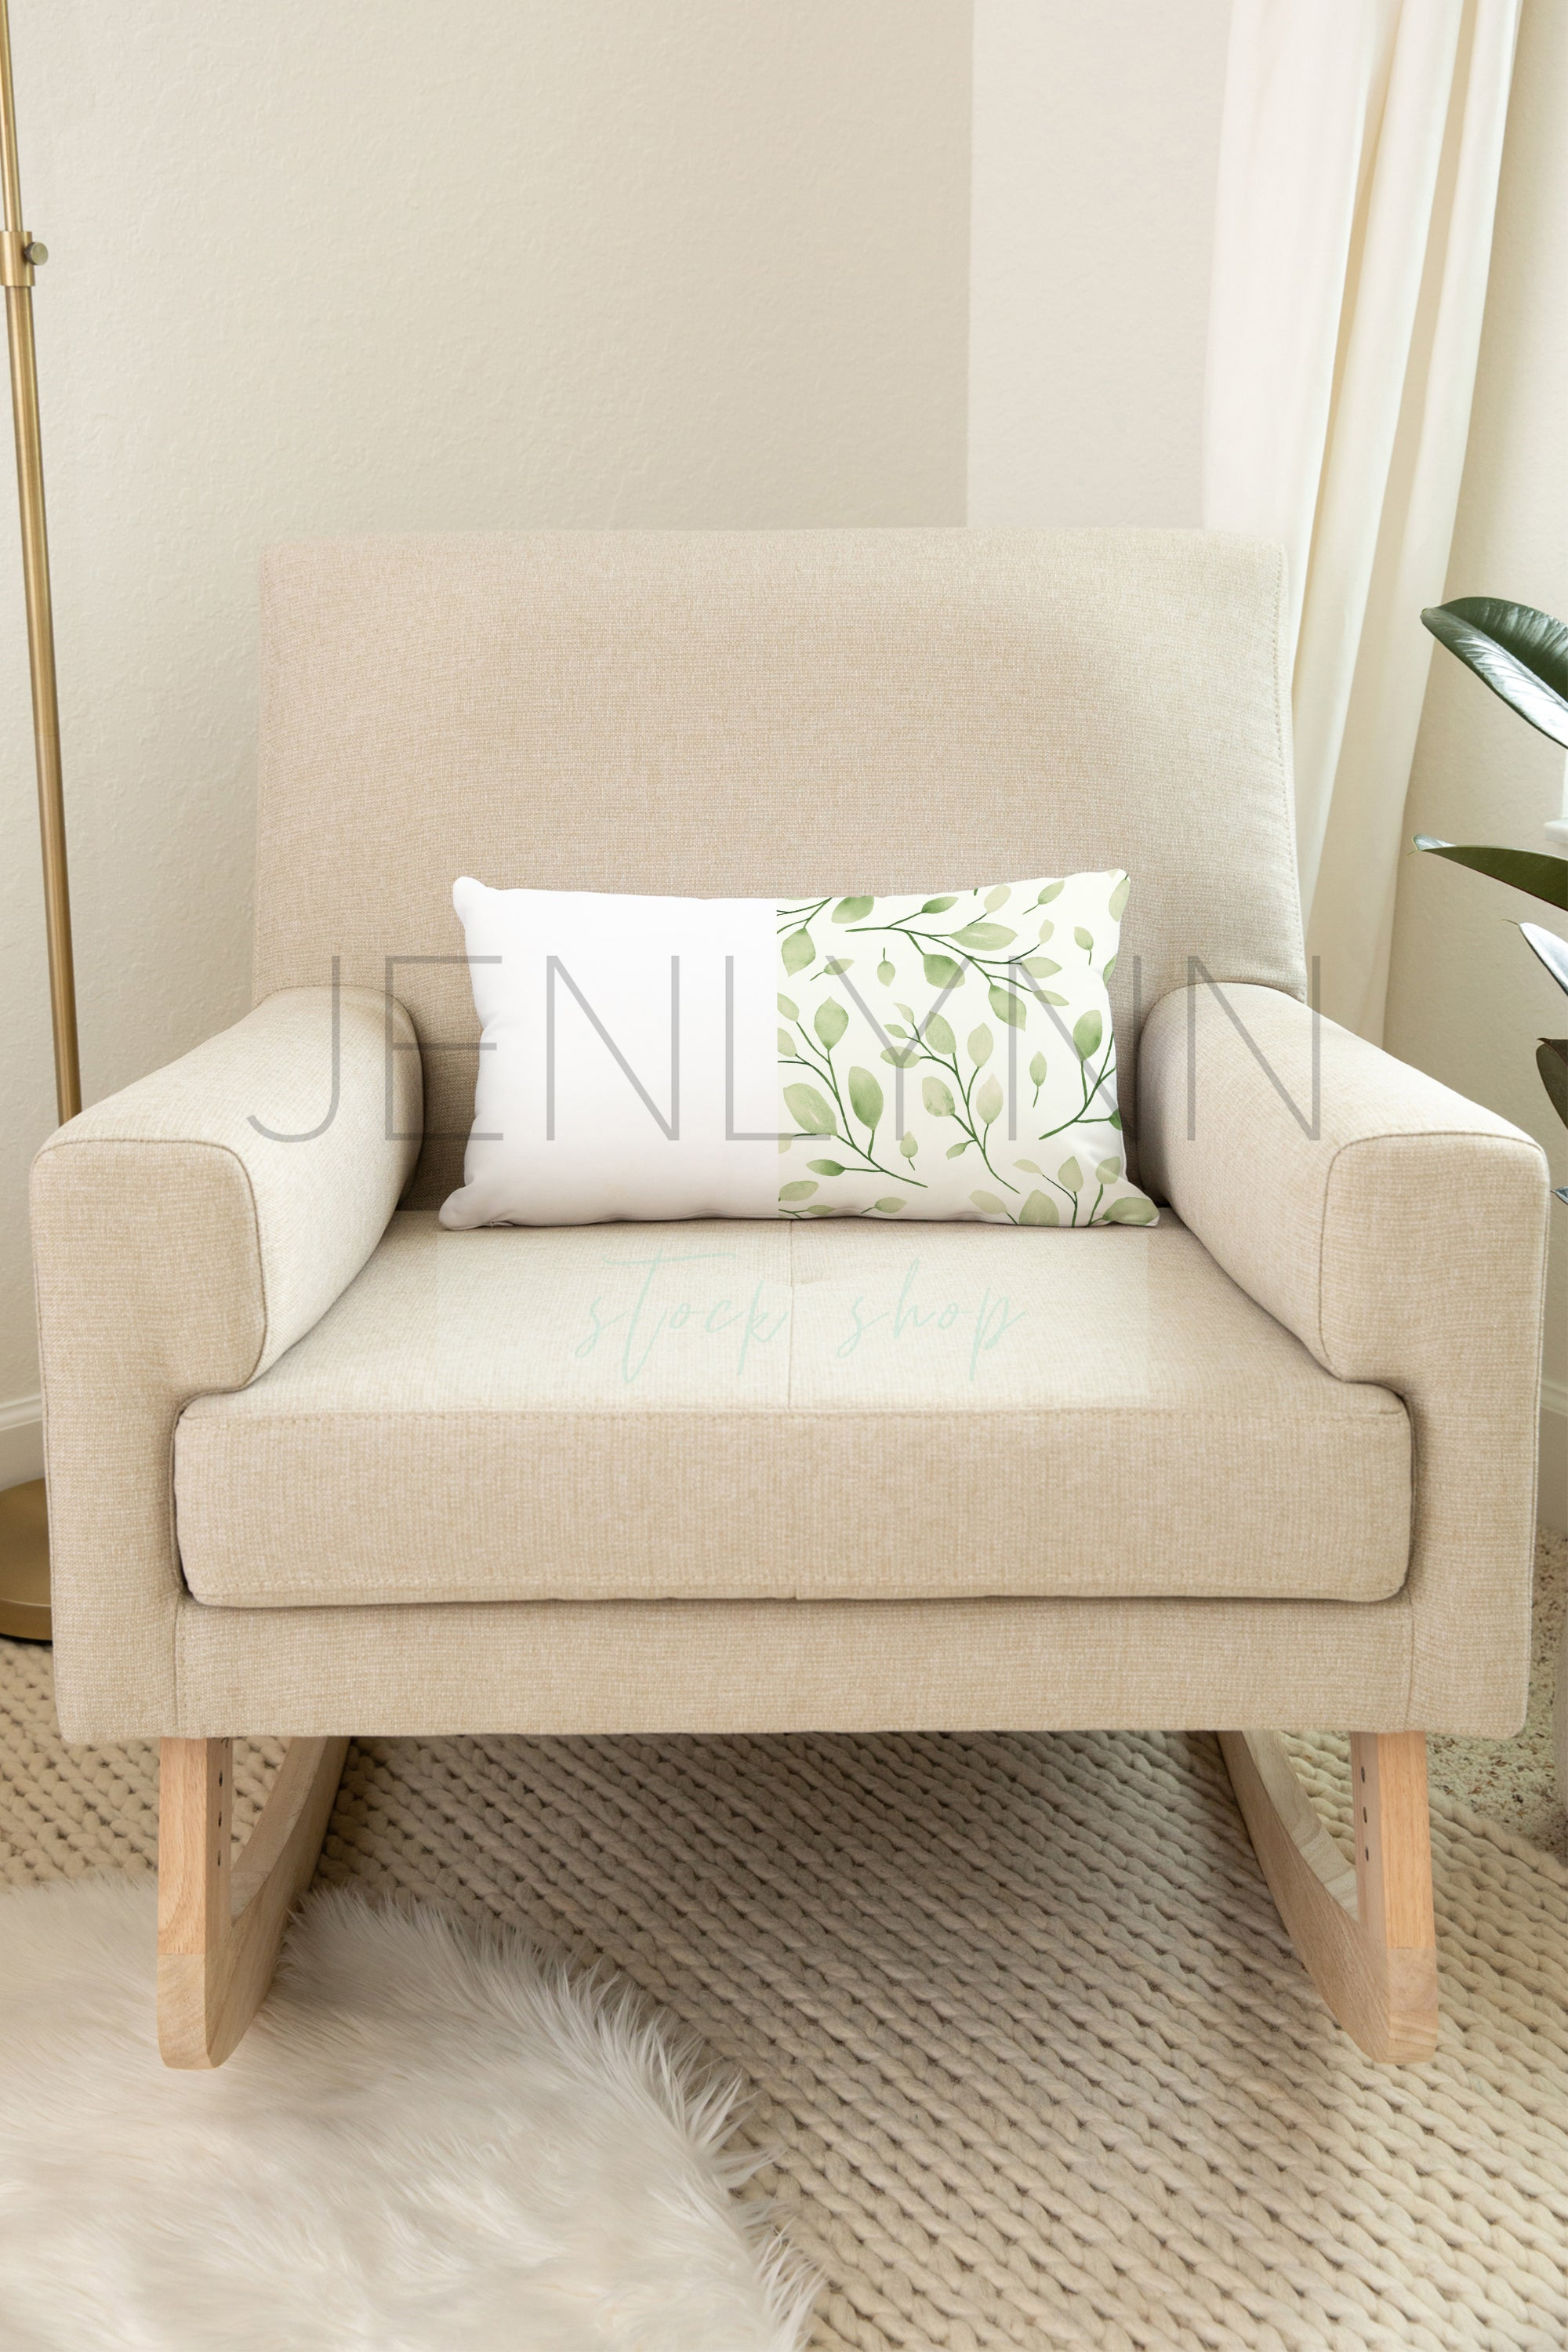 Nursery pillow on Rocker Mockup #NN29